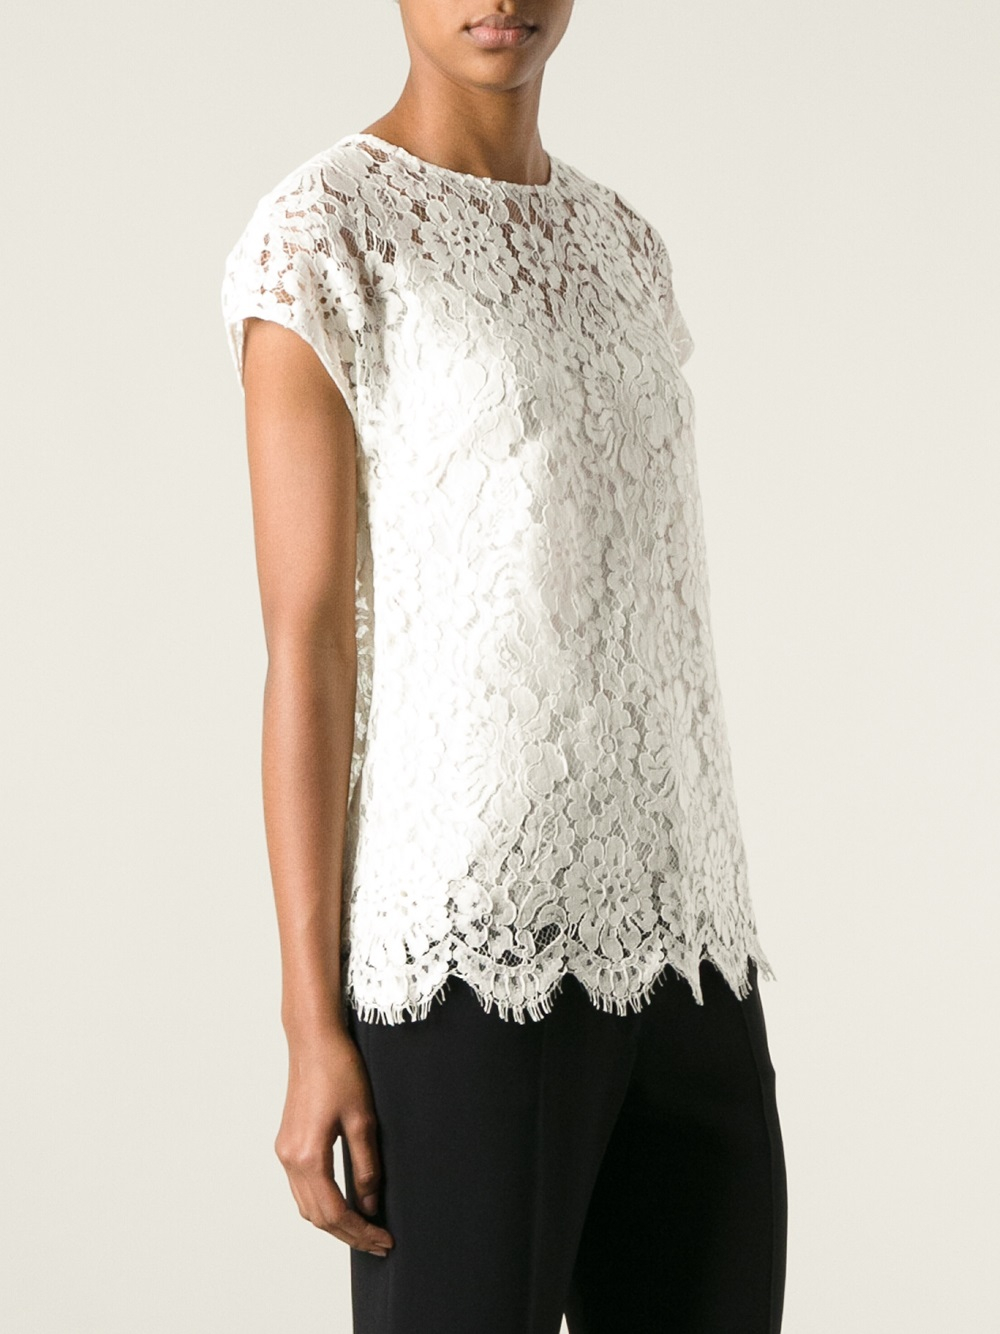 Lyst dolce gabbana floral lace tshirt in white for Dolce gabbana t shirt women